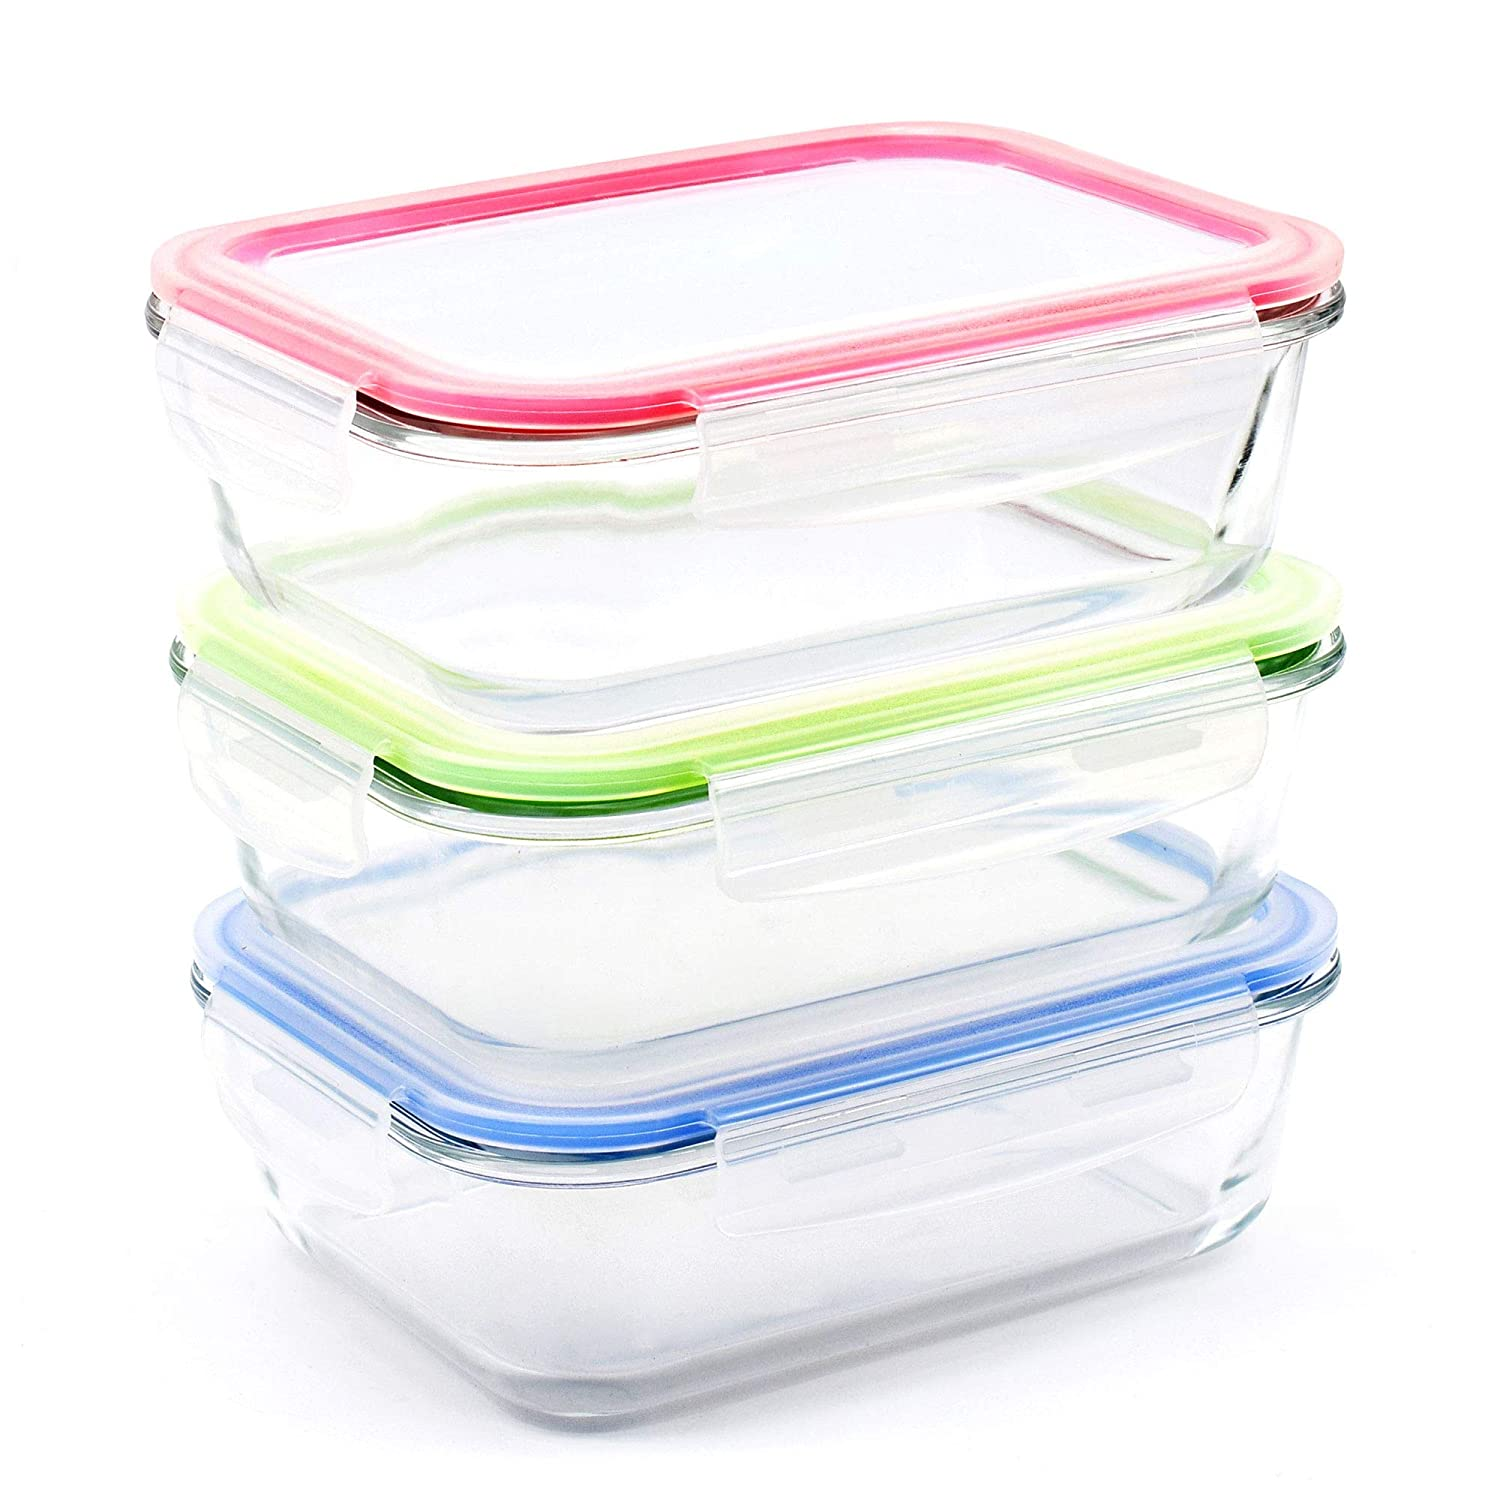 RENPHO [3-Pack, 36oz] Glass Meal Prep Containers - Glass Bento Box Divided Food Storage Containers with Airtight Lids Lunch Glass Containers - Microwave,Oven,Freezer,Dishwasher Safe